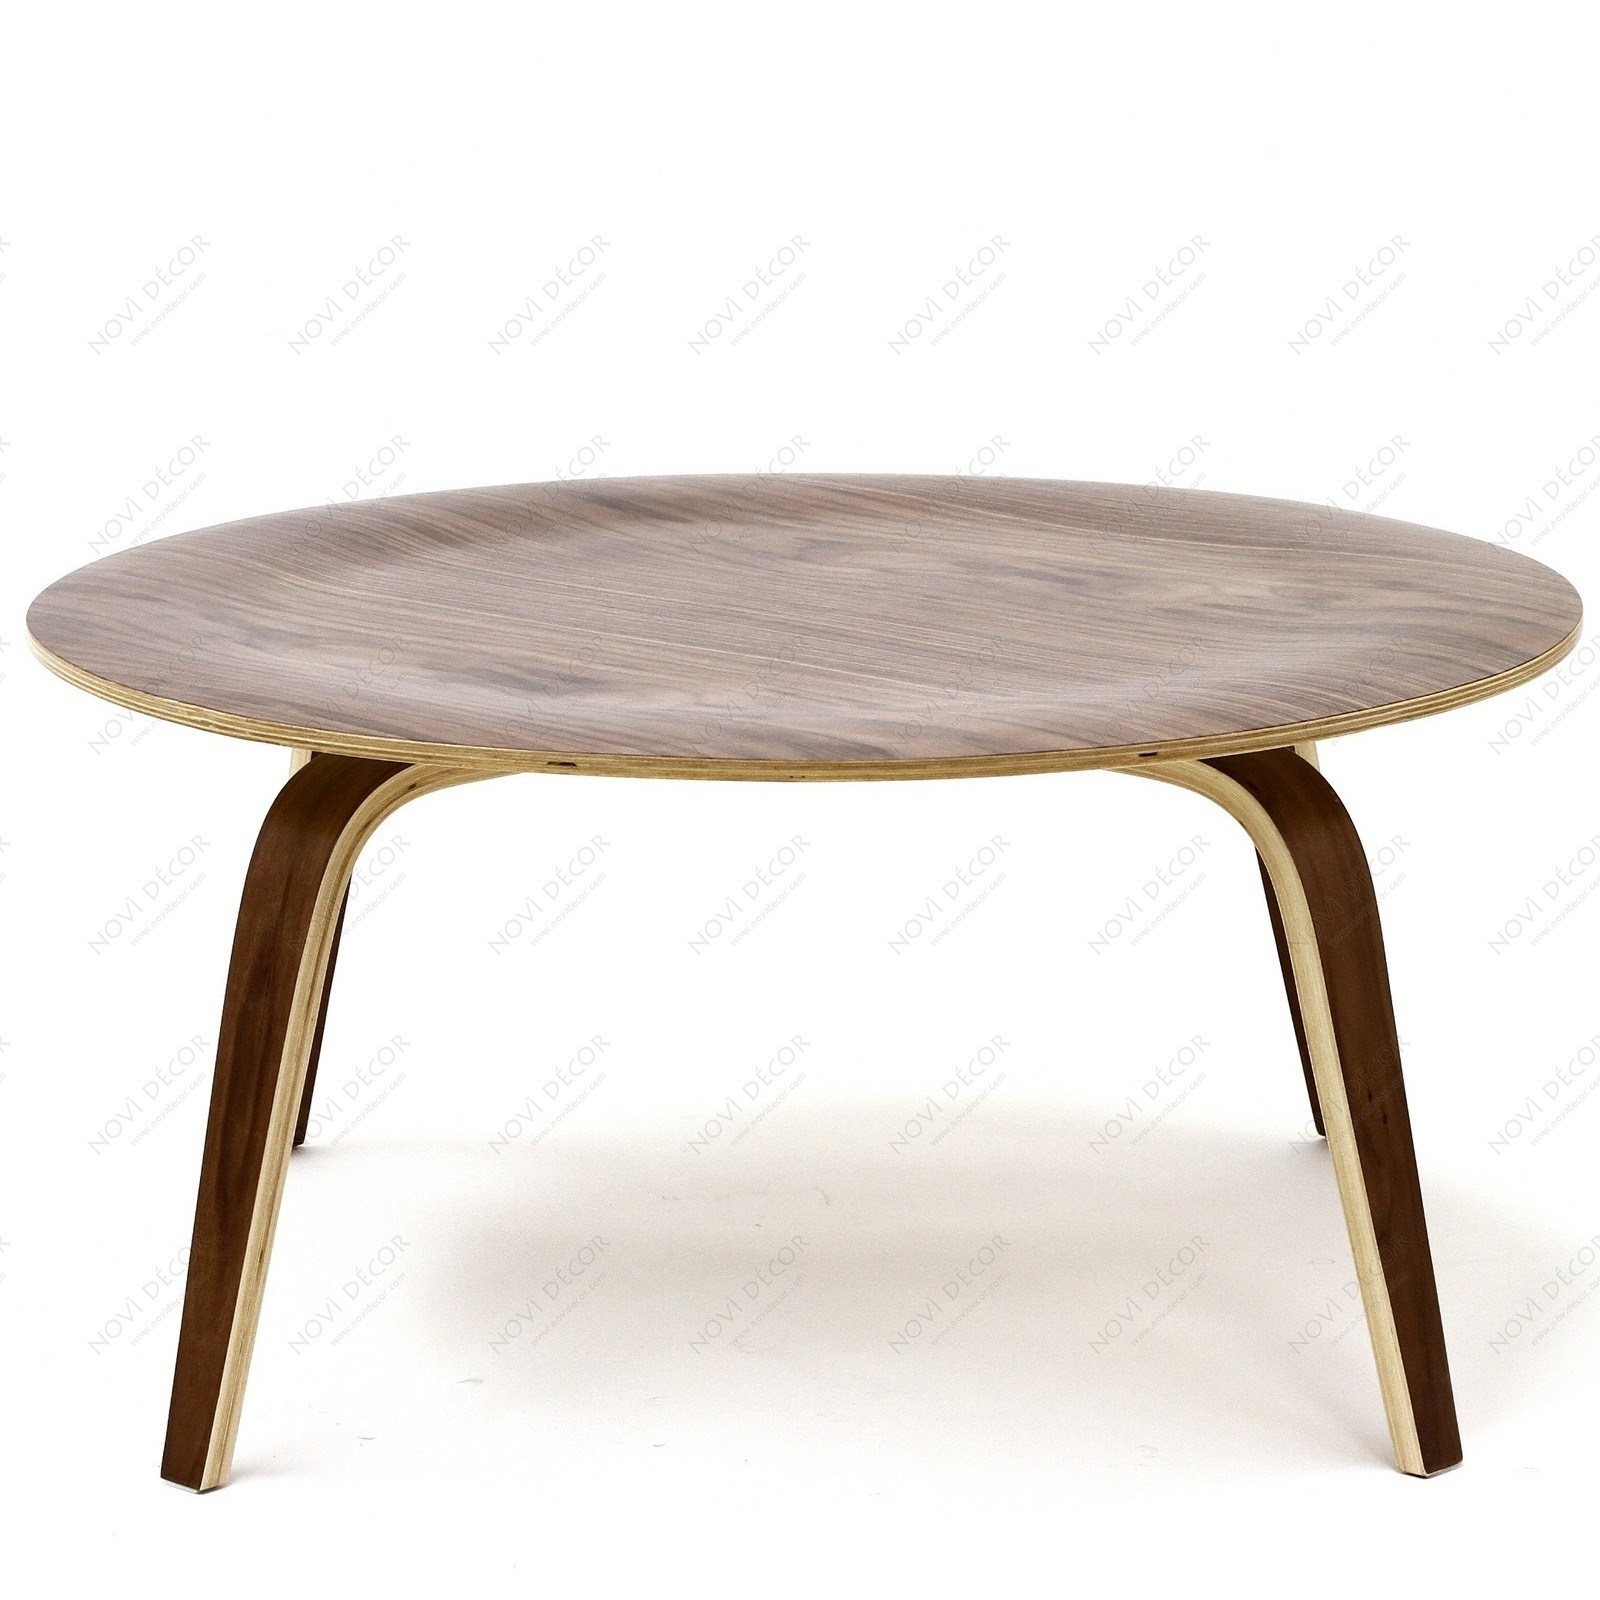 Creative Eames Coffee Table